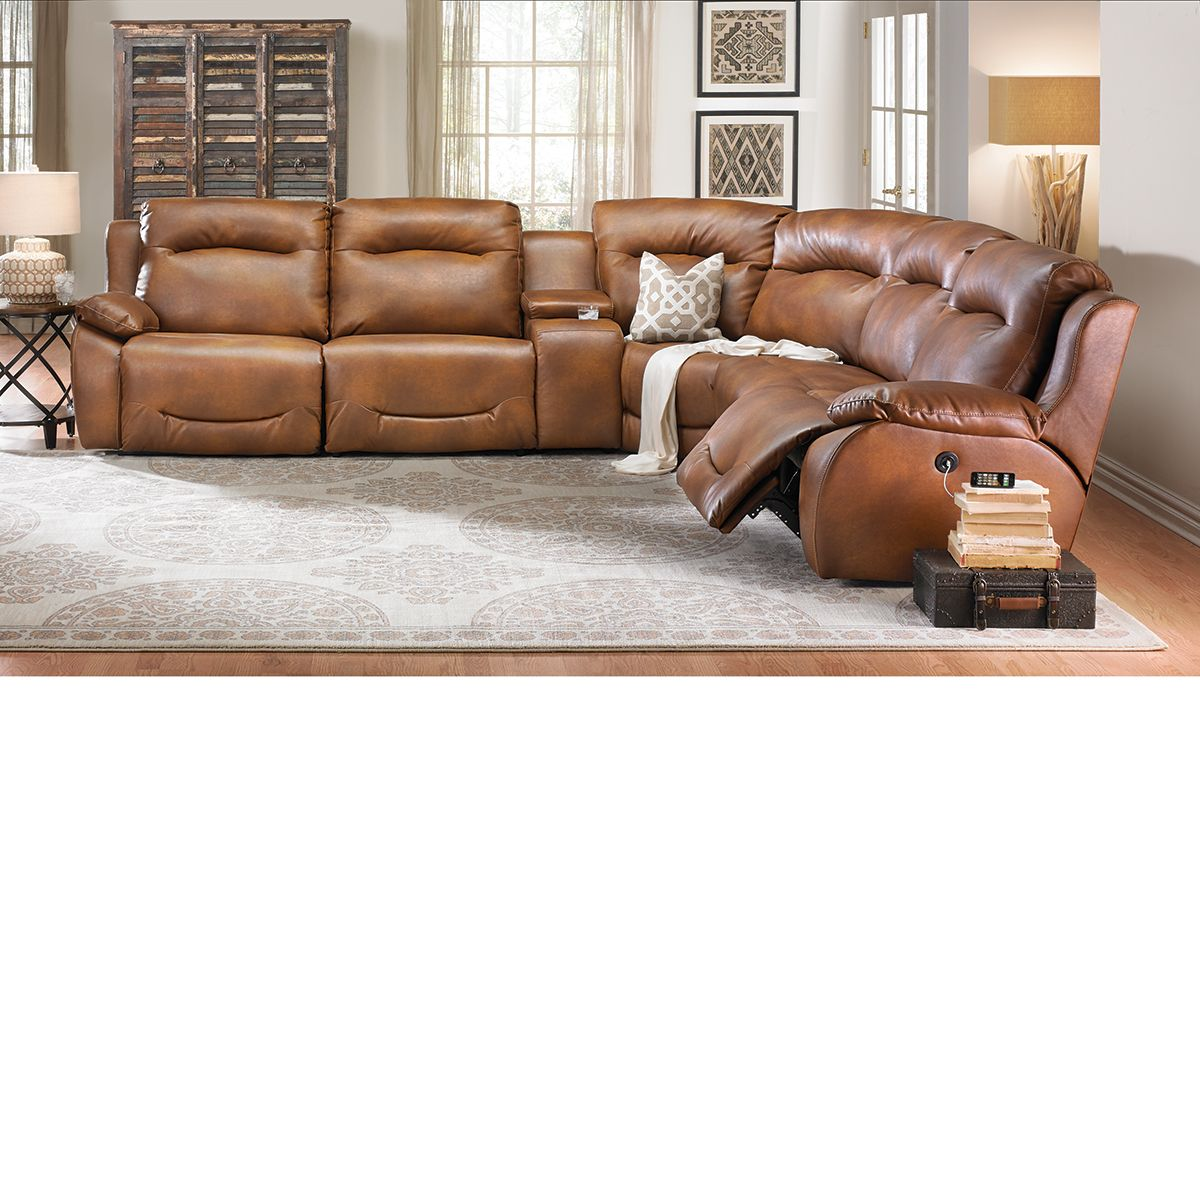 Pin On Living Room #the #dump #living #room #furniture